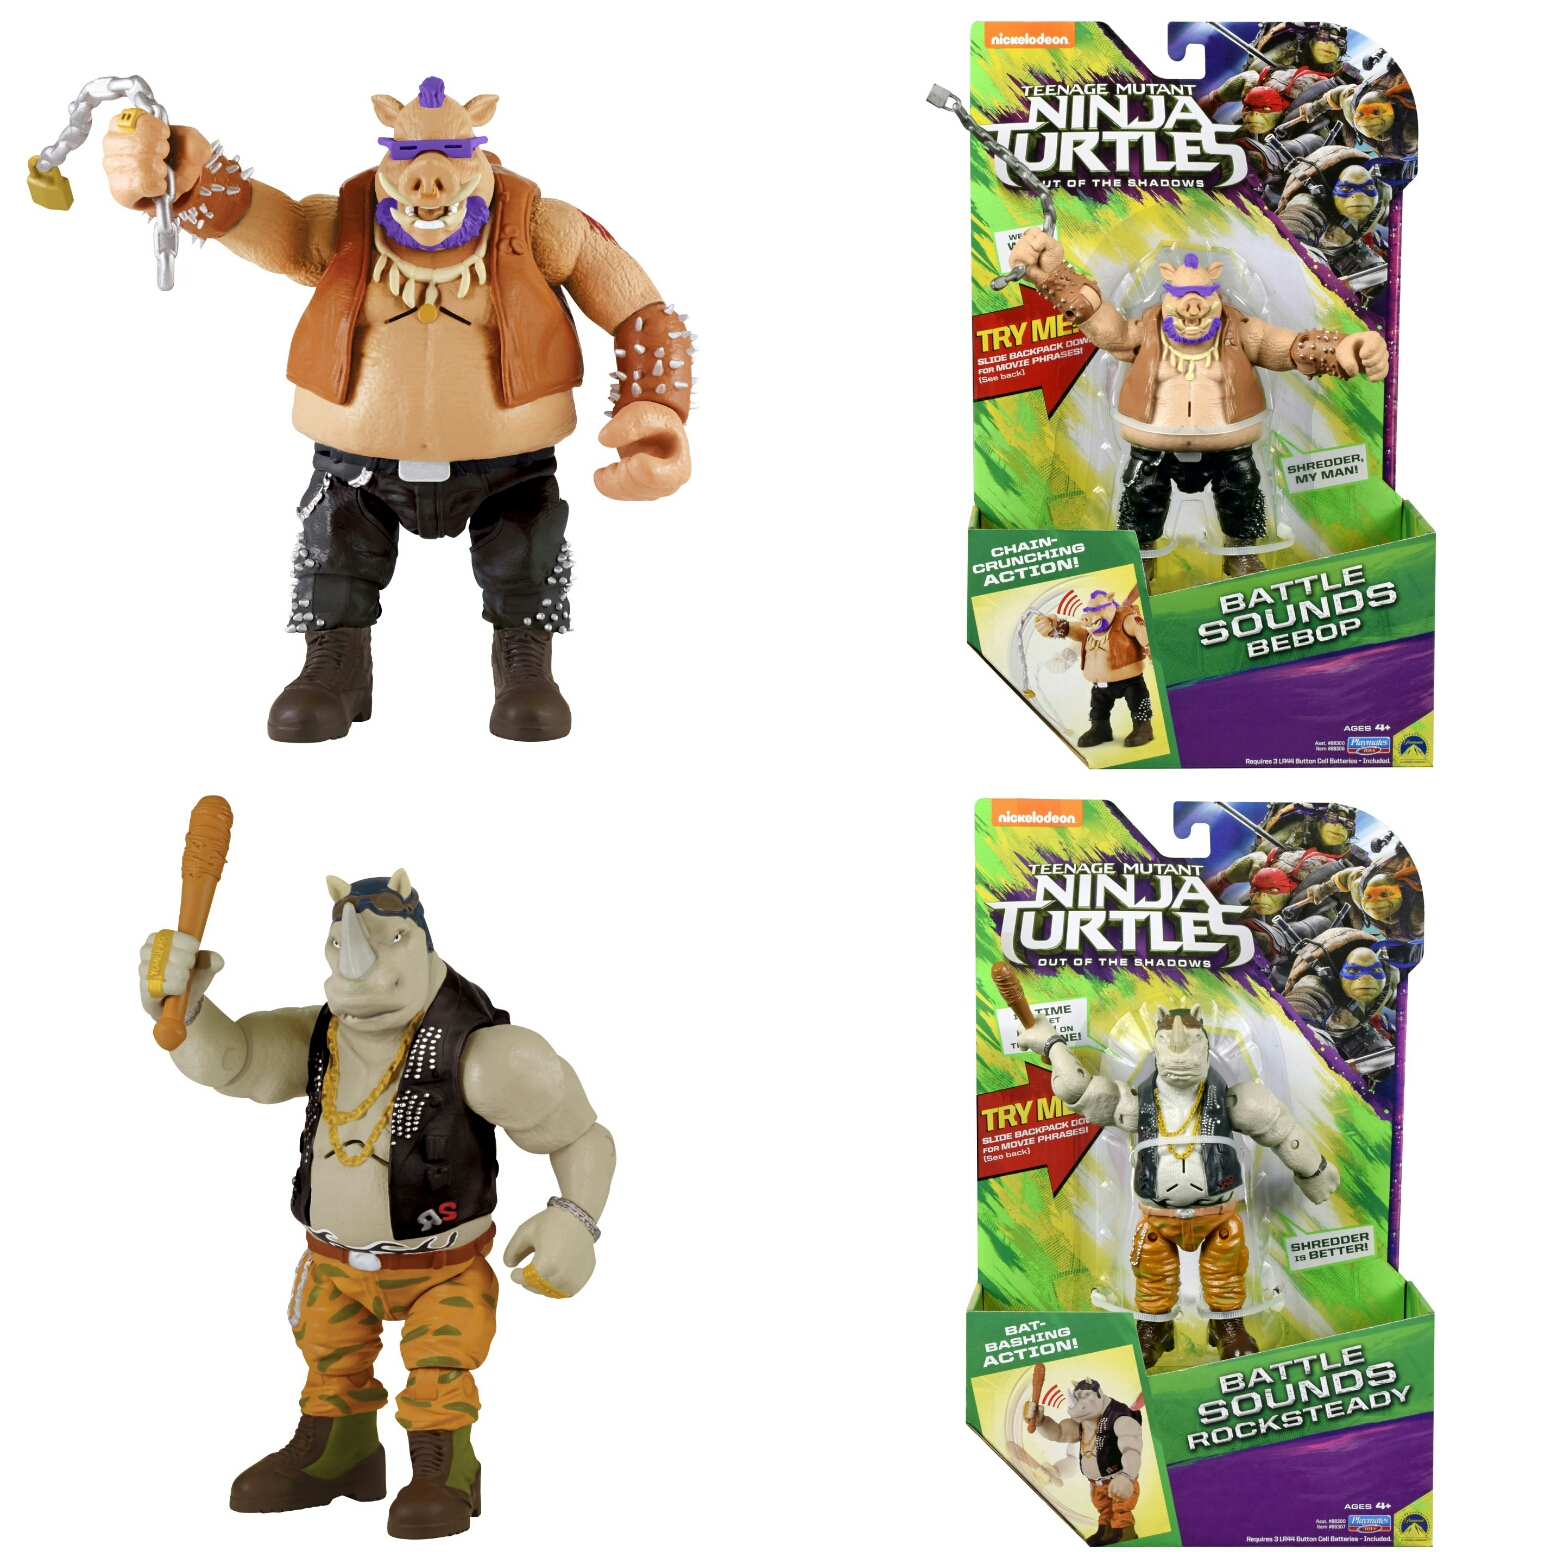 Playmates reveals their battle sound TMNT out of the Shadows